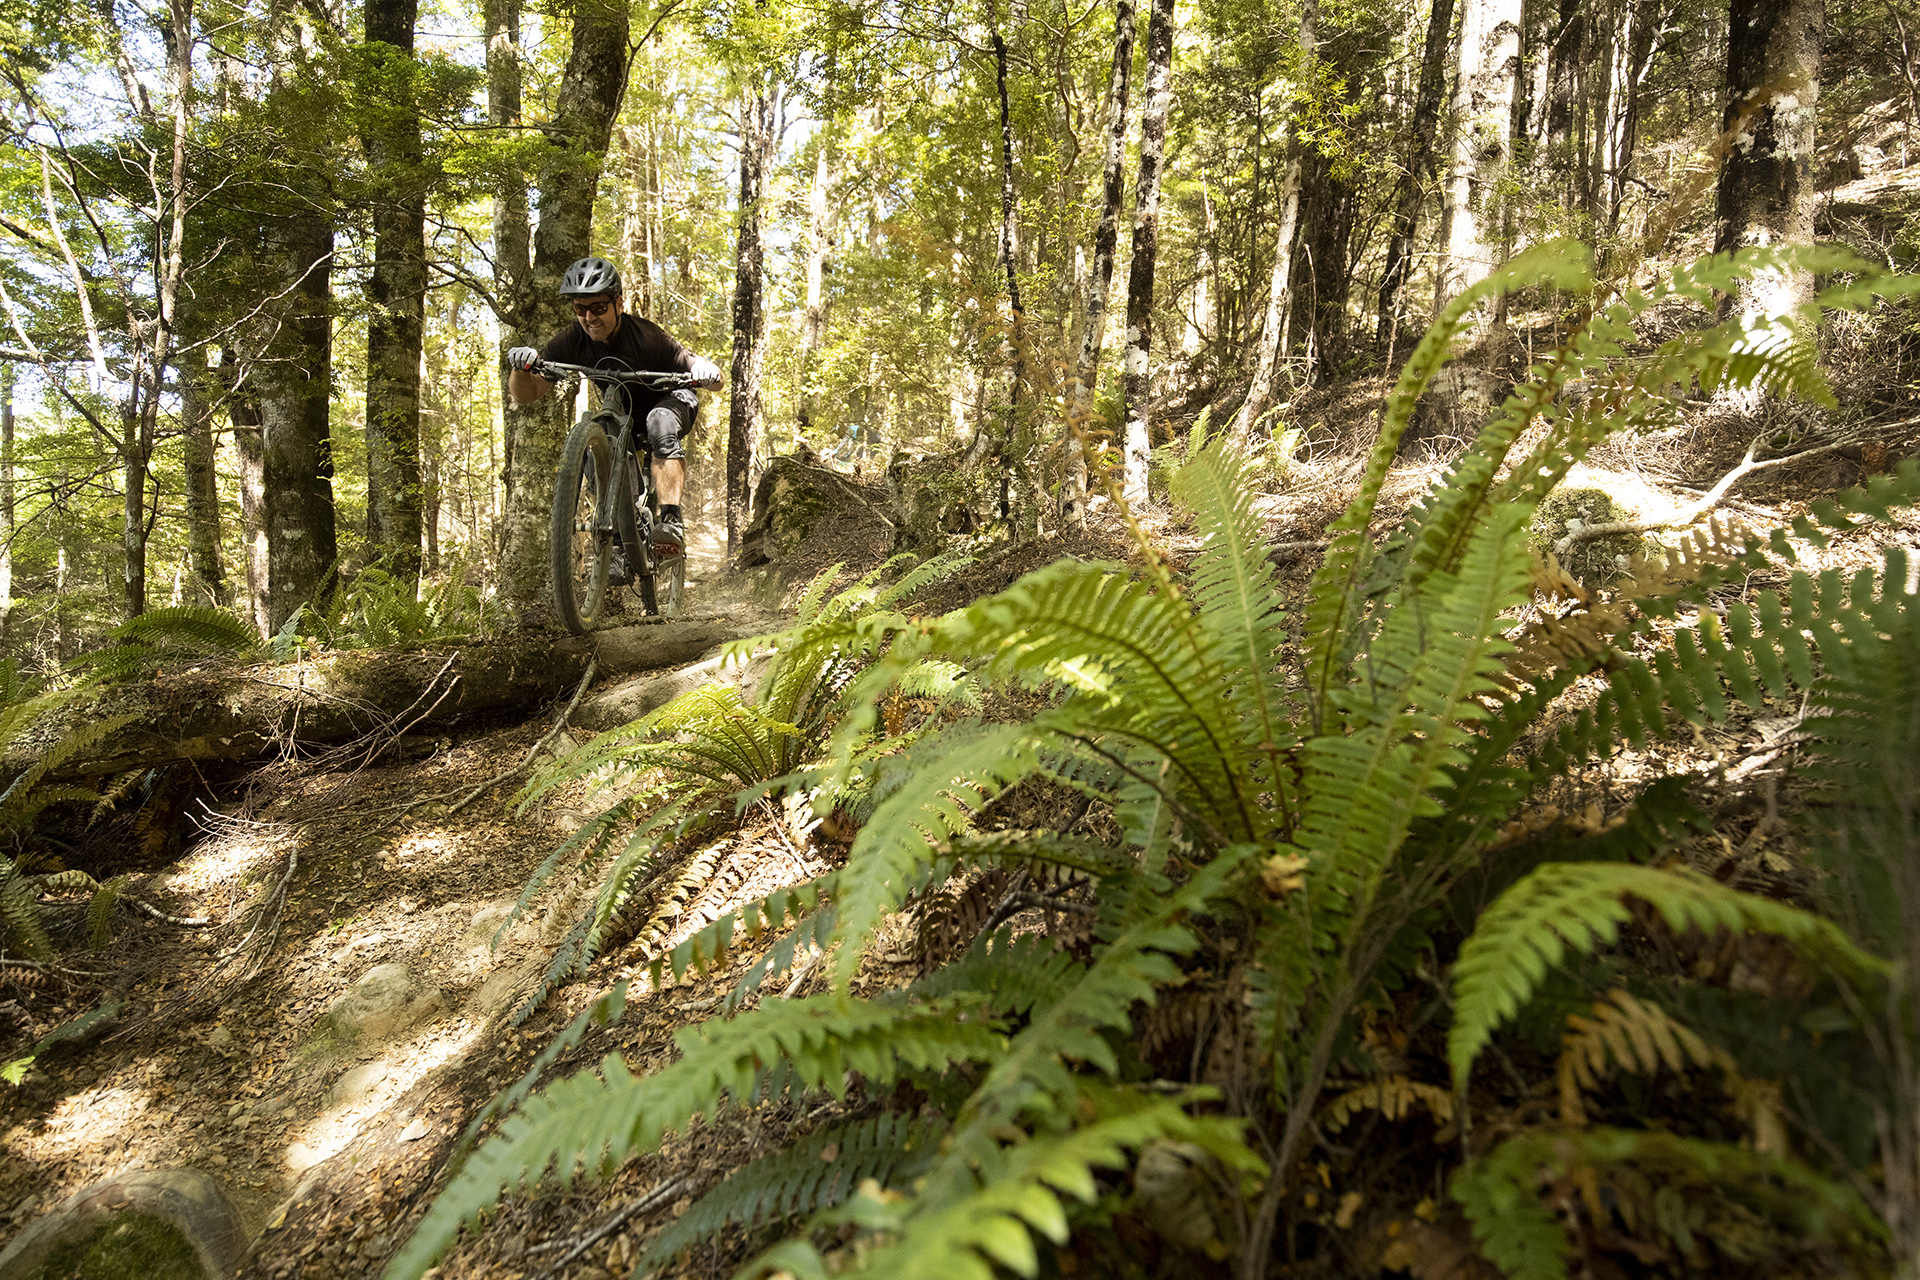 NELSON, New Zealand -  Carl Patton at the Wairoa Gorge MTB Park during the launch of the 2019 Santa Cruz Bicycles Megatower in Nelson, New Zealand. Photo by Gary Perkin